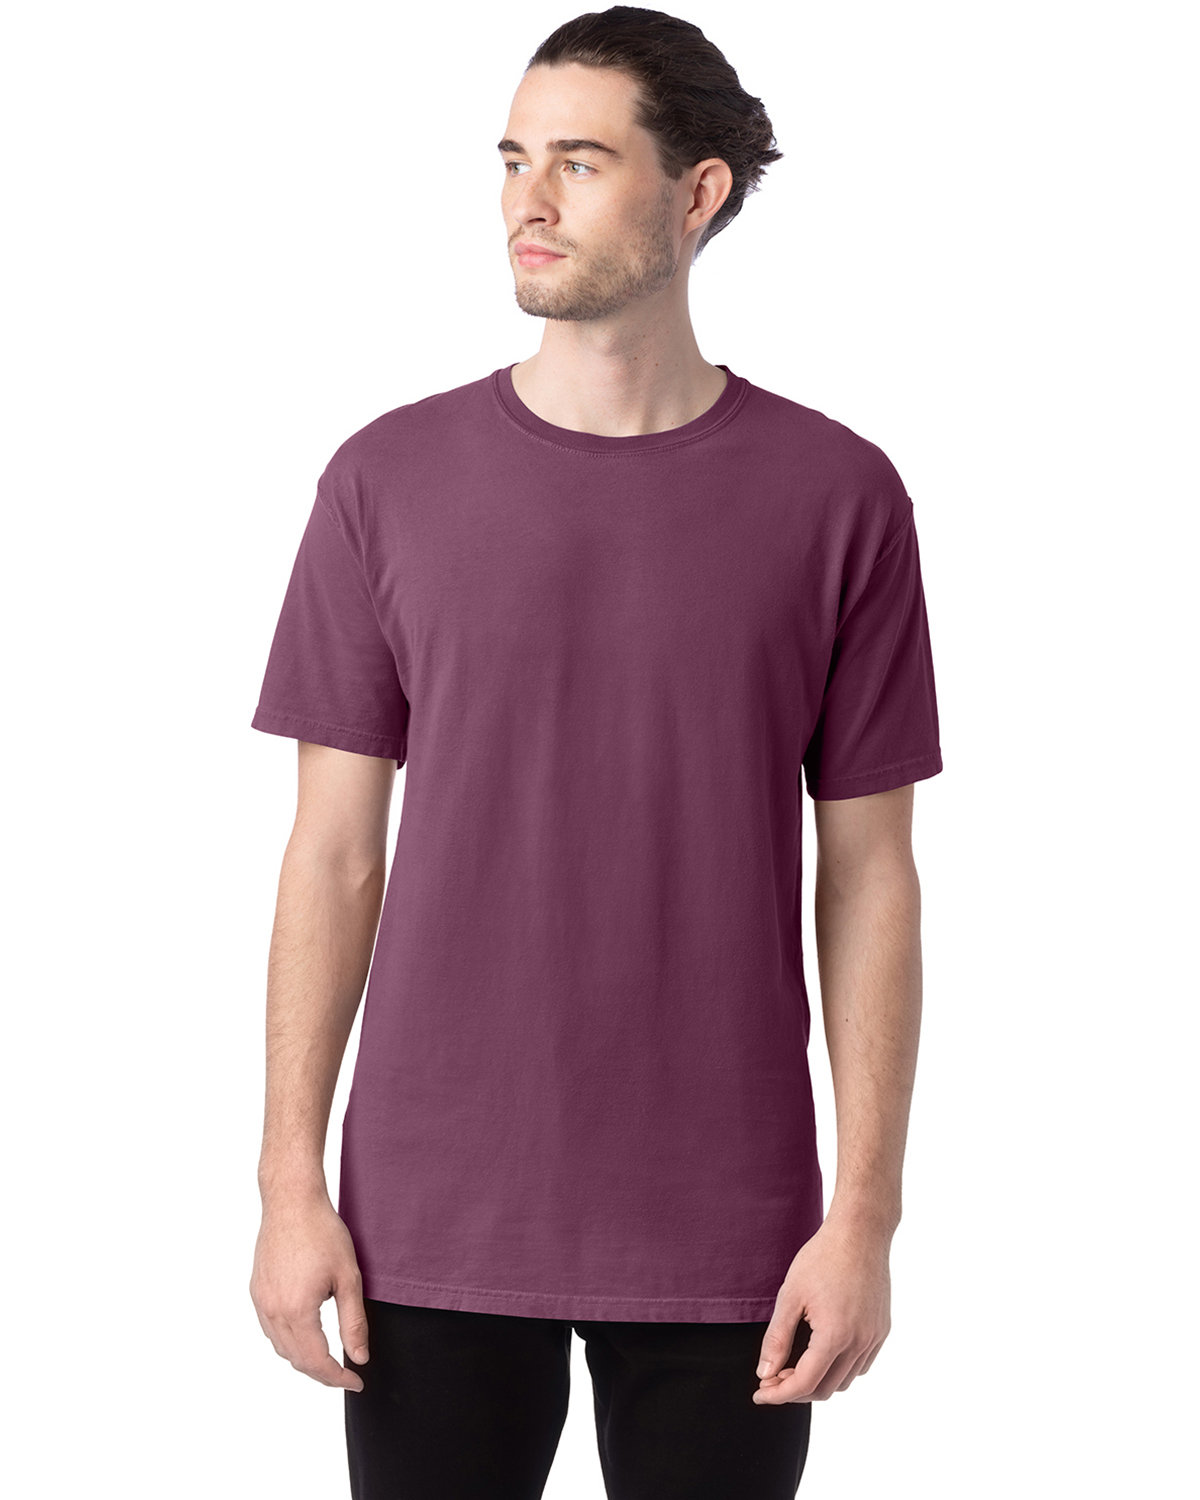 ComfortWash by Hanes Men's 5.5 oz., 100% Ringspun Cotton Garment-Dyed T-Shirt PURPLE PLM RAISN